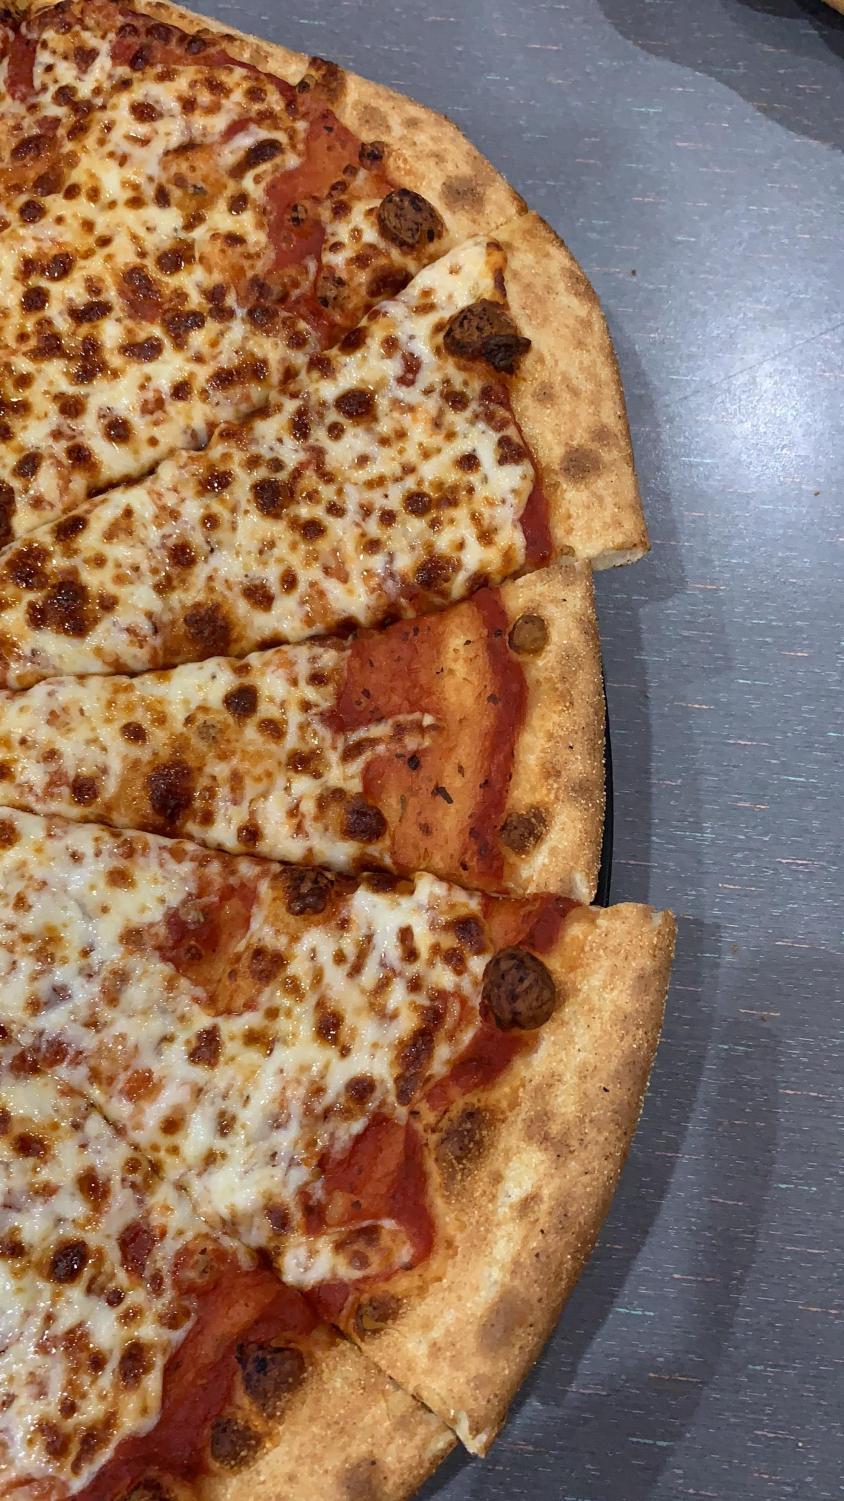 A suspiciously uneven Chuck E. Cheese's pizza.